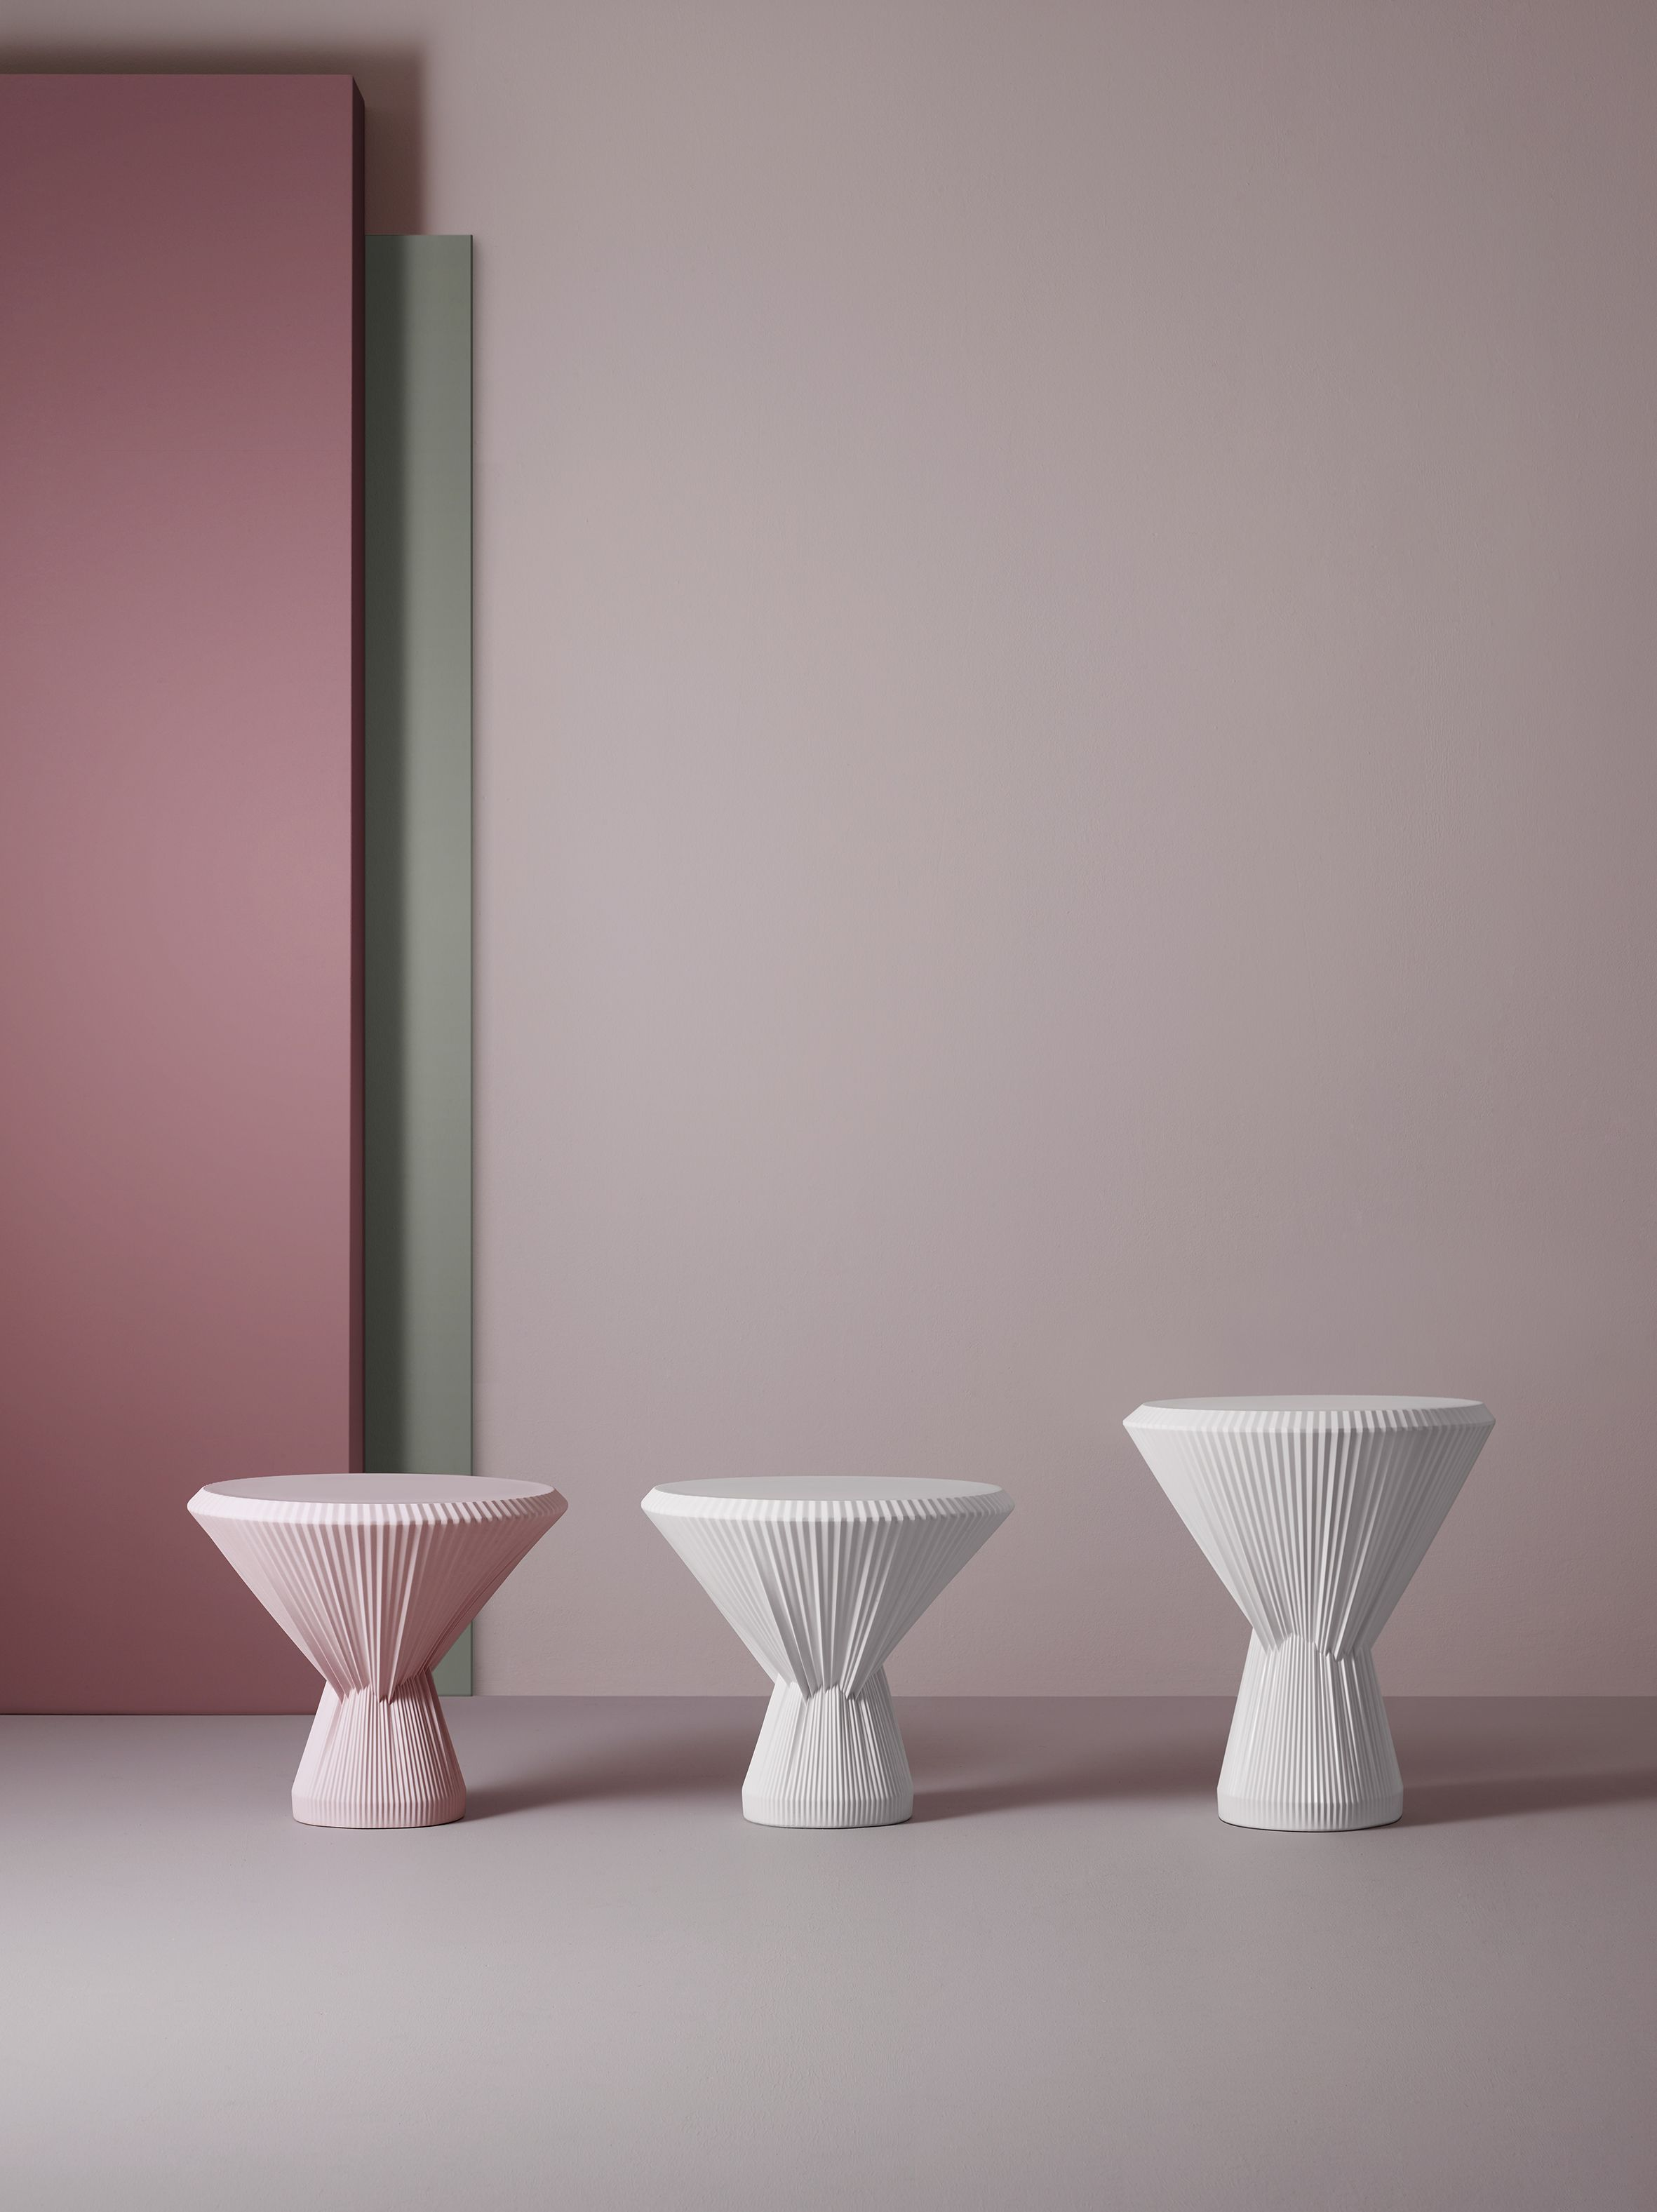 Januarys maison objet in 8 pieces representing design in 2019